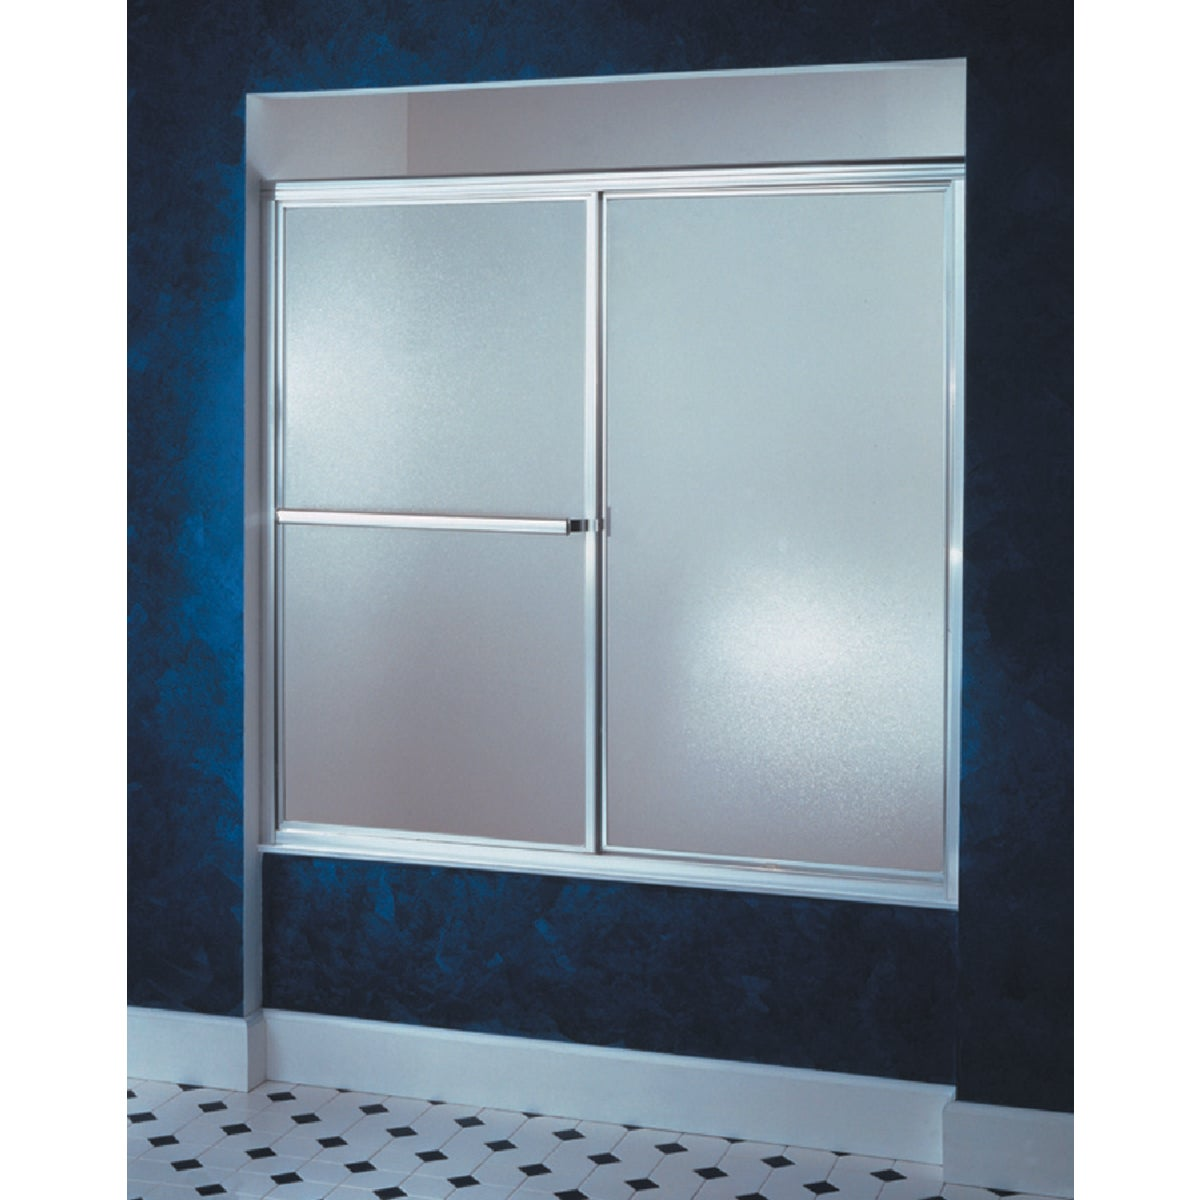 51-1/4-59-3/8 SLV TUB DR - 5906-59S by Sterling Doors